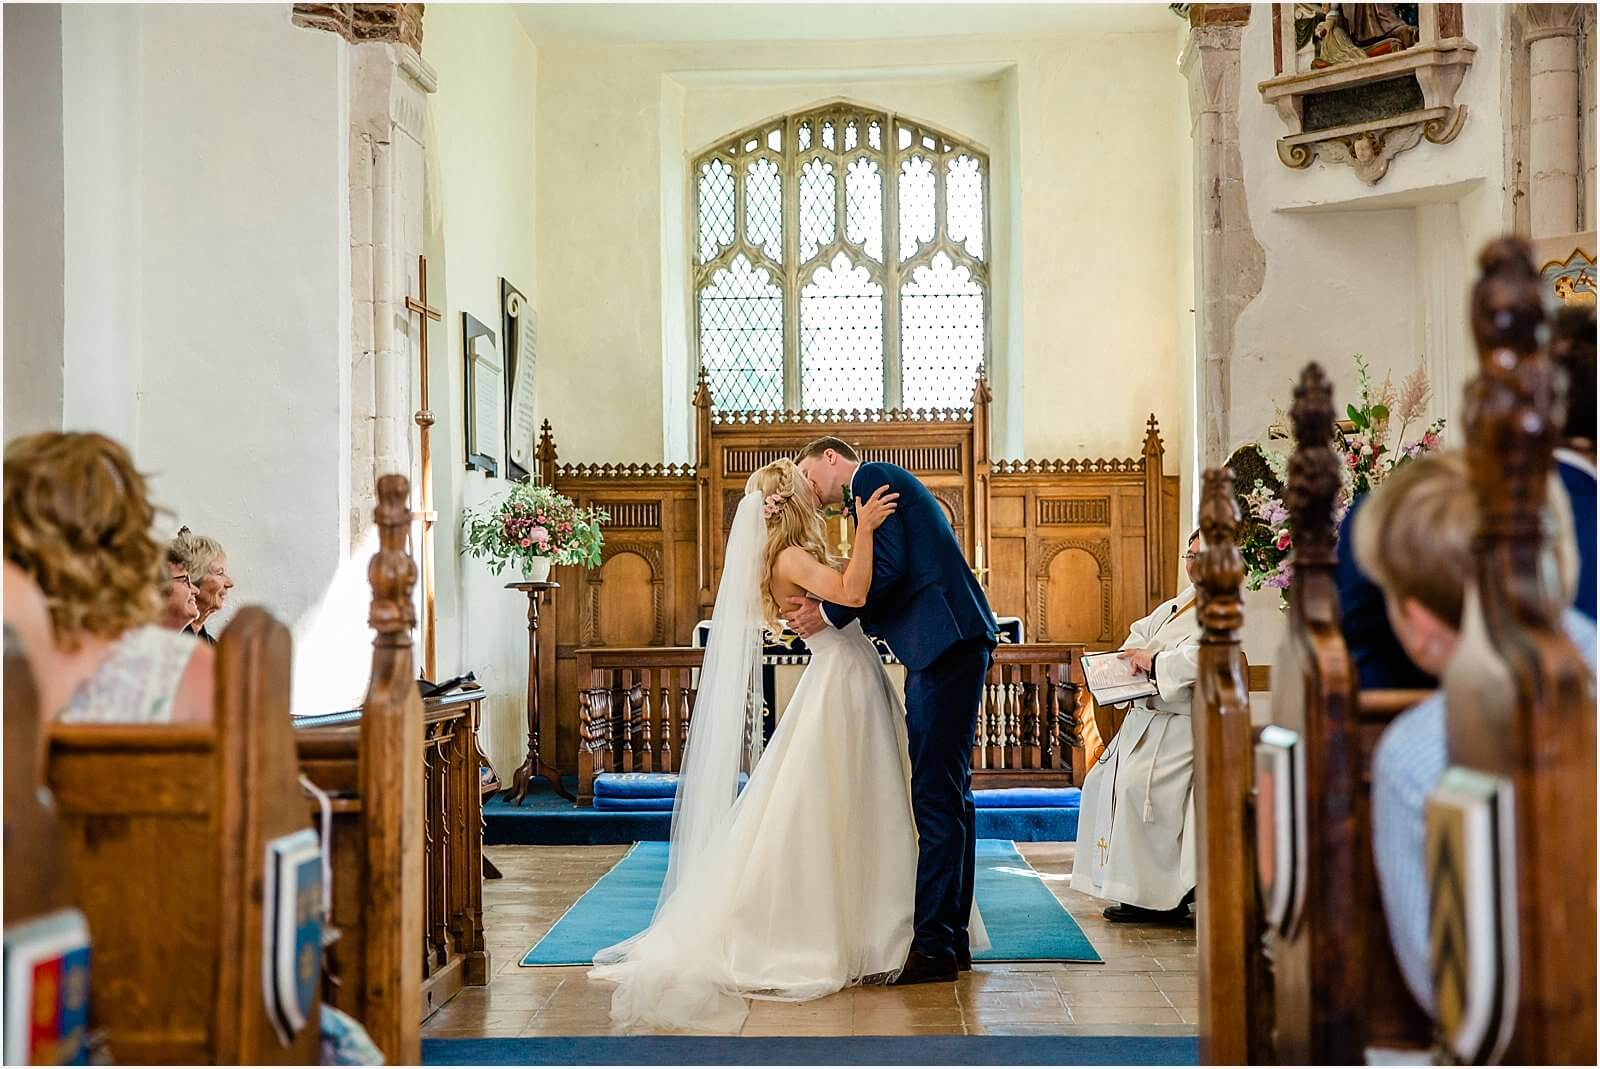 Polstead Church Wedding | Carla & Toby 30